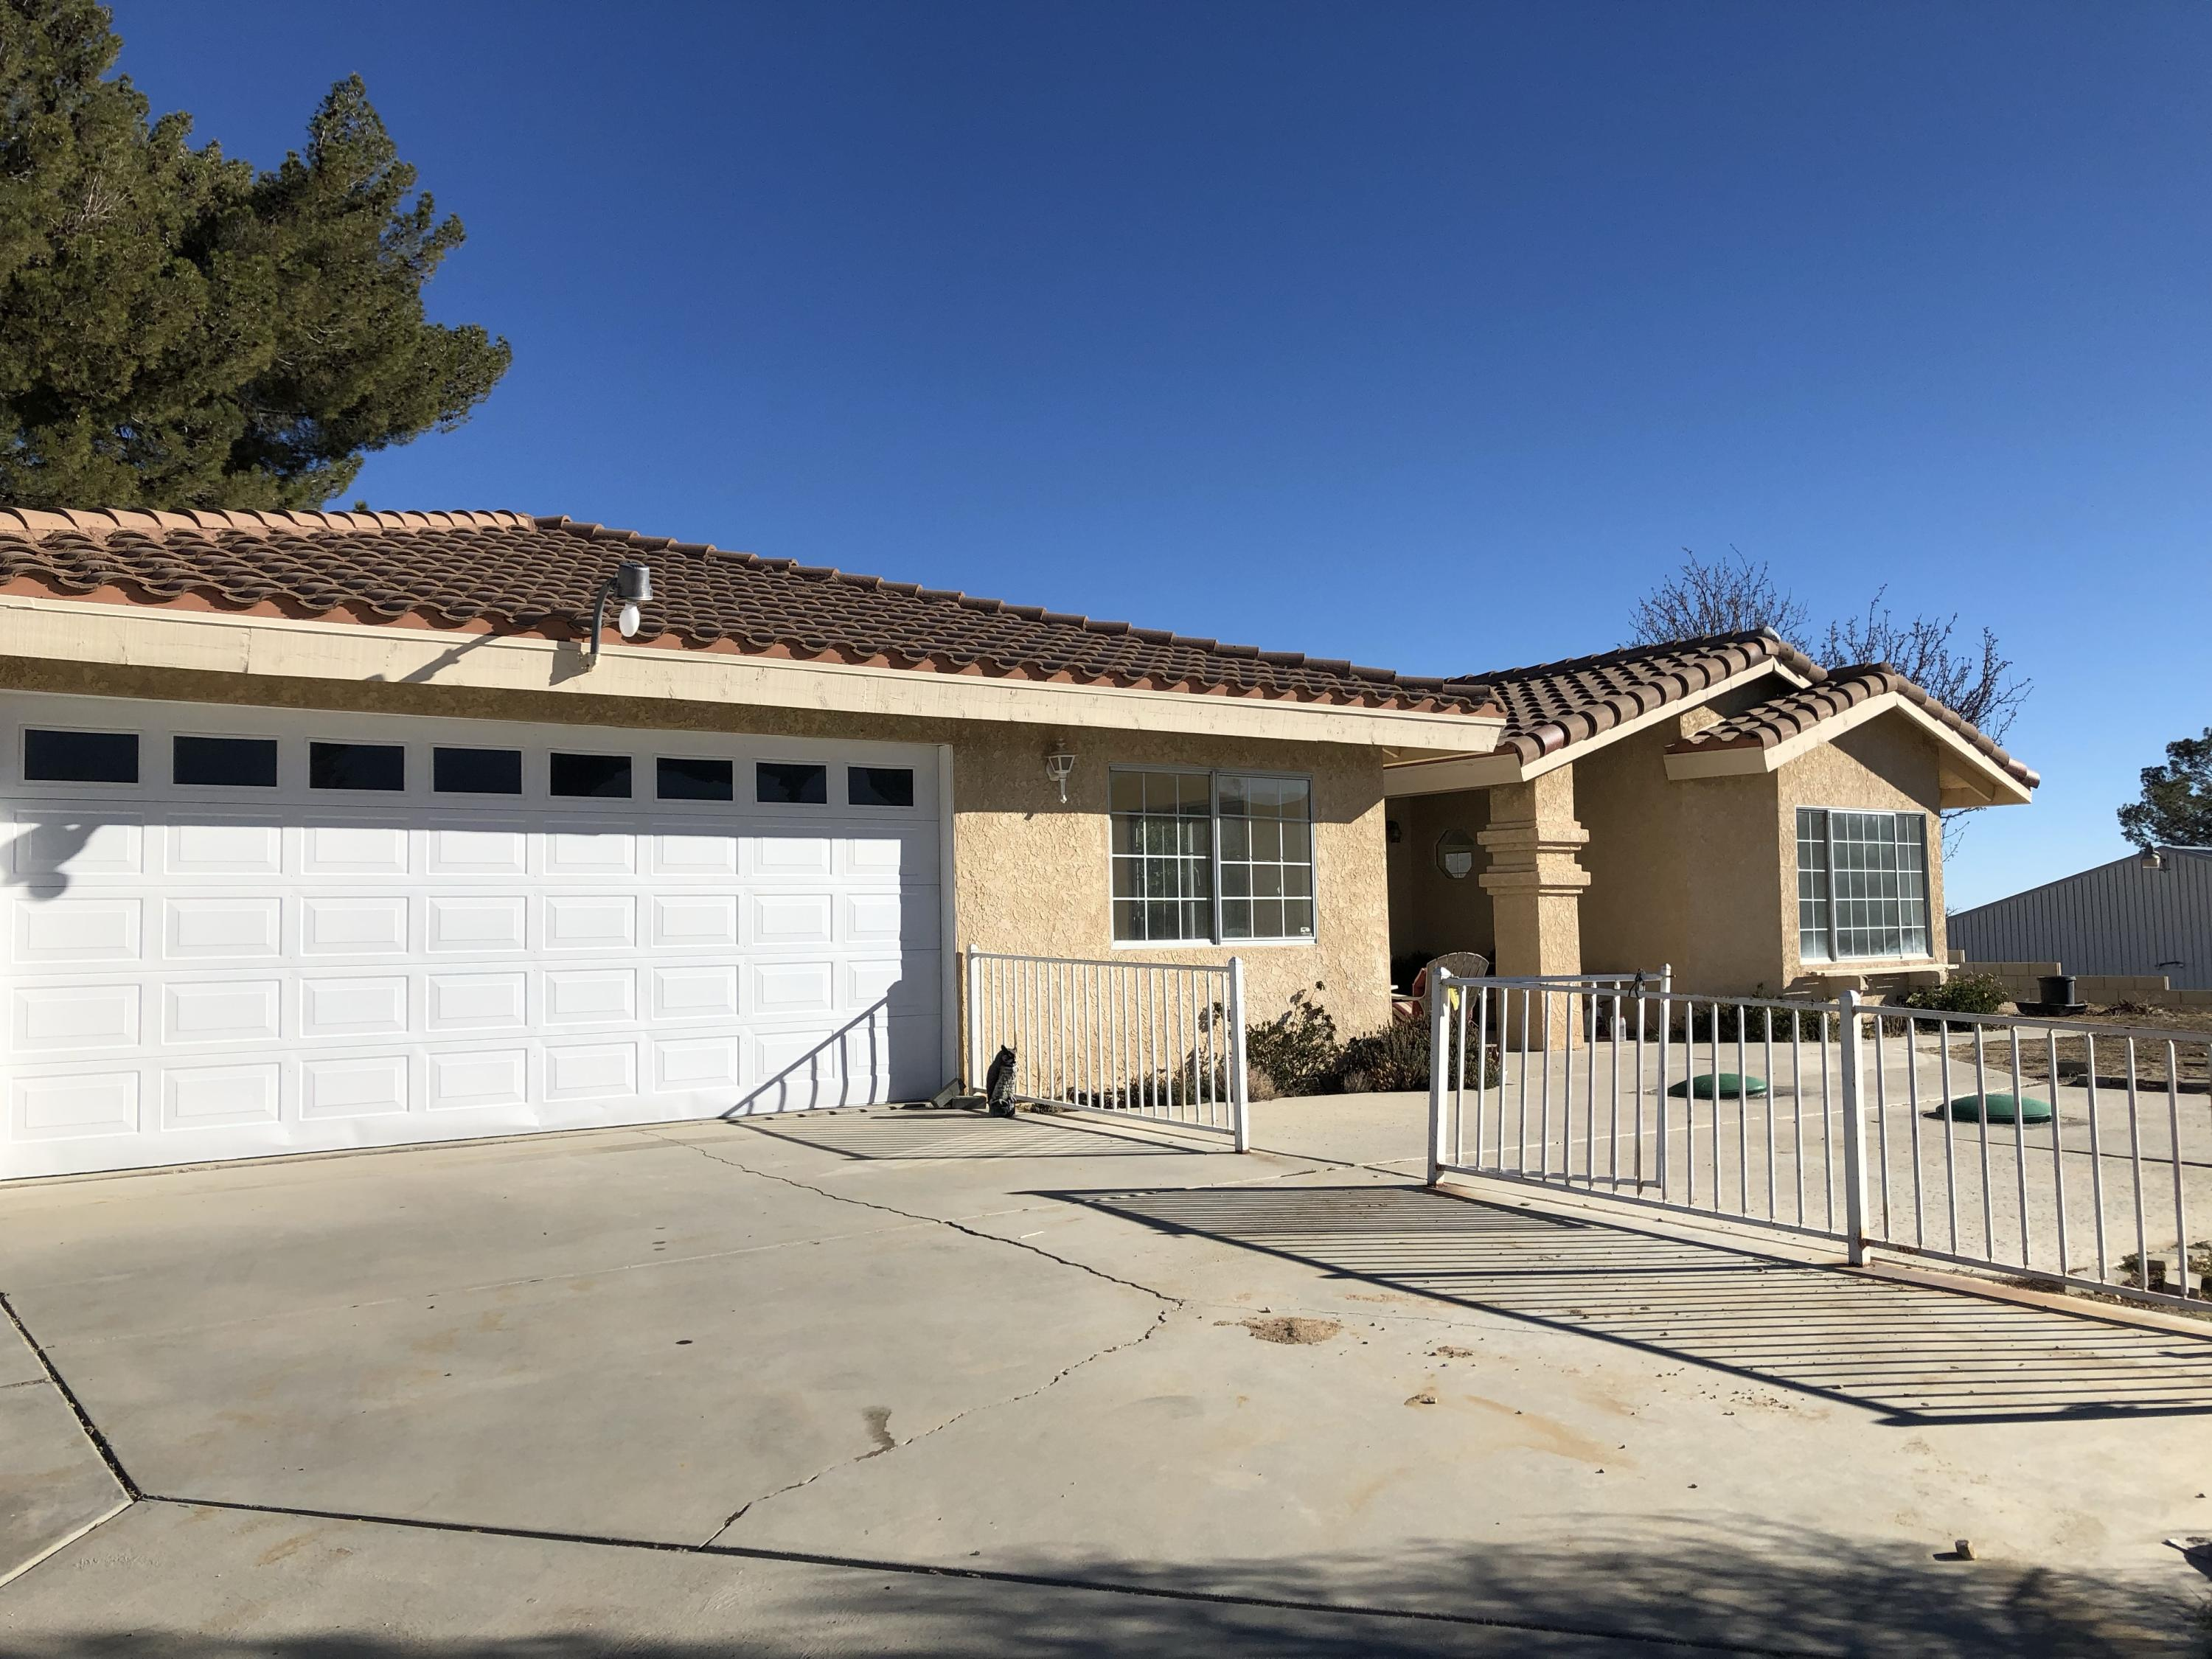 35748 E 42nd Street, Palmdale, California